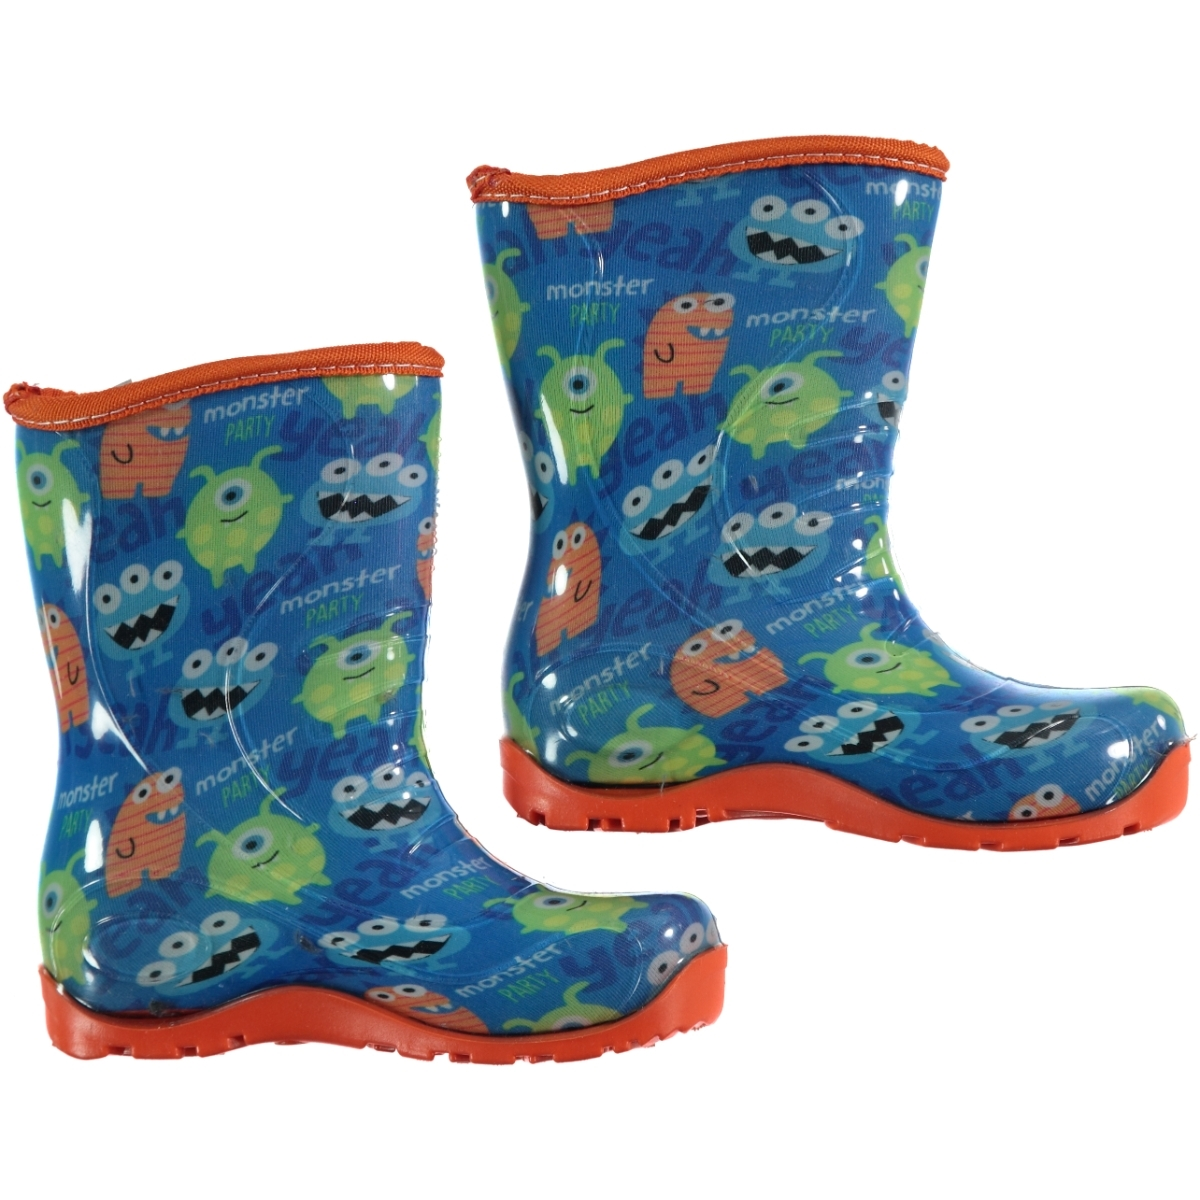 Civil Beast Boy Boots Blue Patterned Numbers 24-29